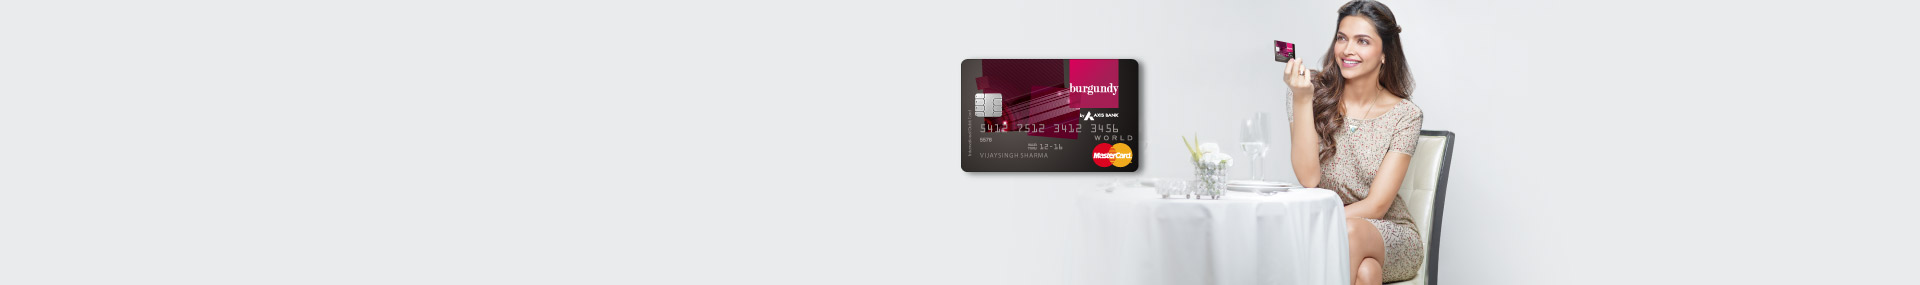 Burgundy world debit card premium cards axis bank burgundy world dbv02productpgb burgundy world dbv02homepgmobileb debit cards colourmoves